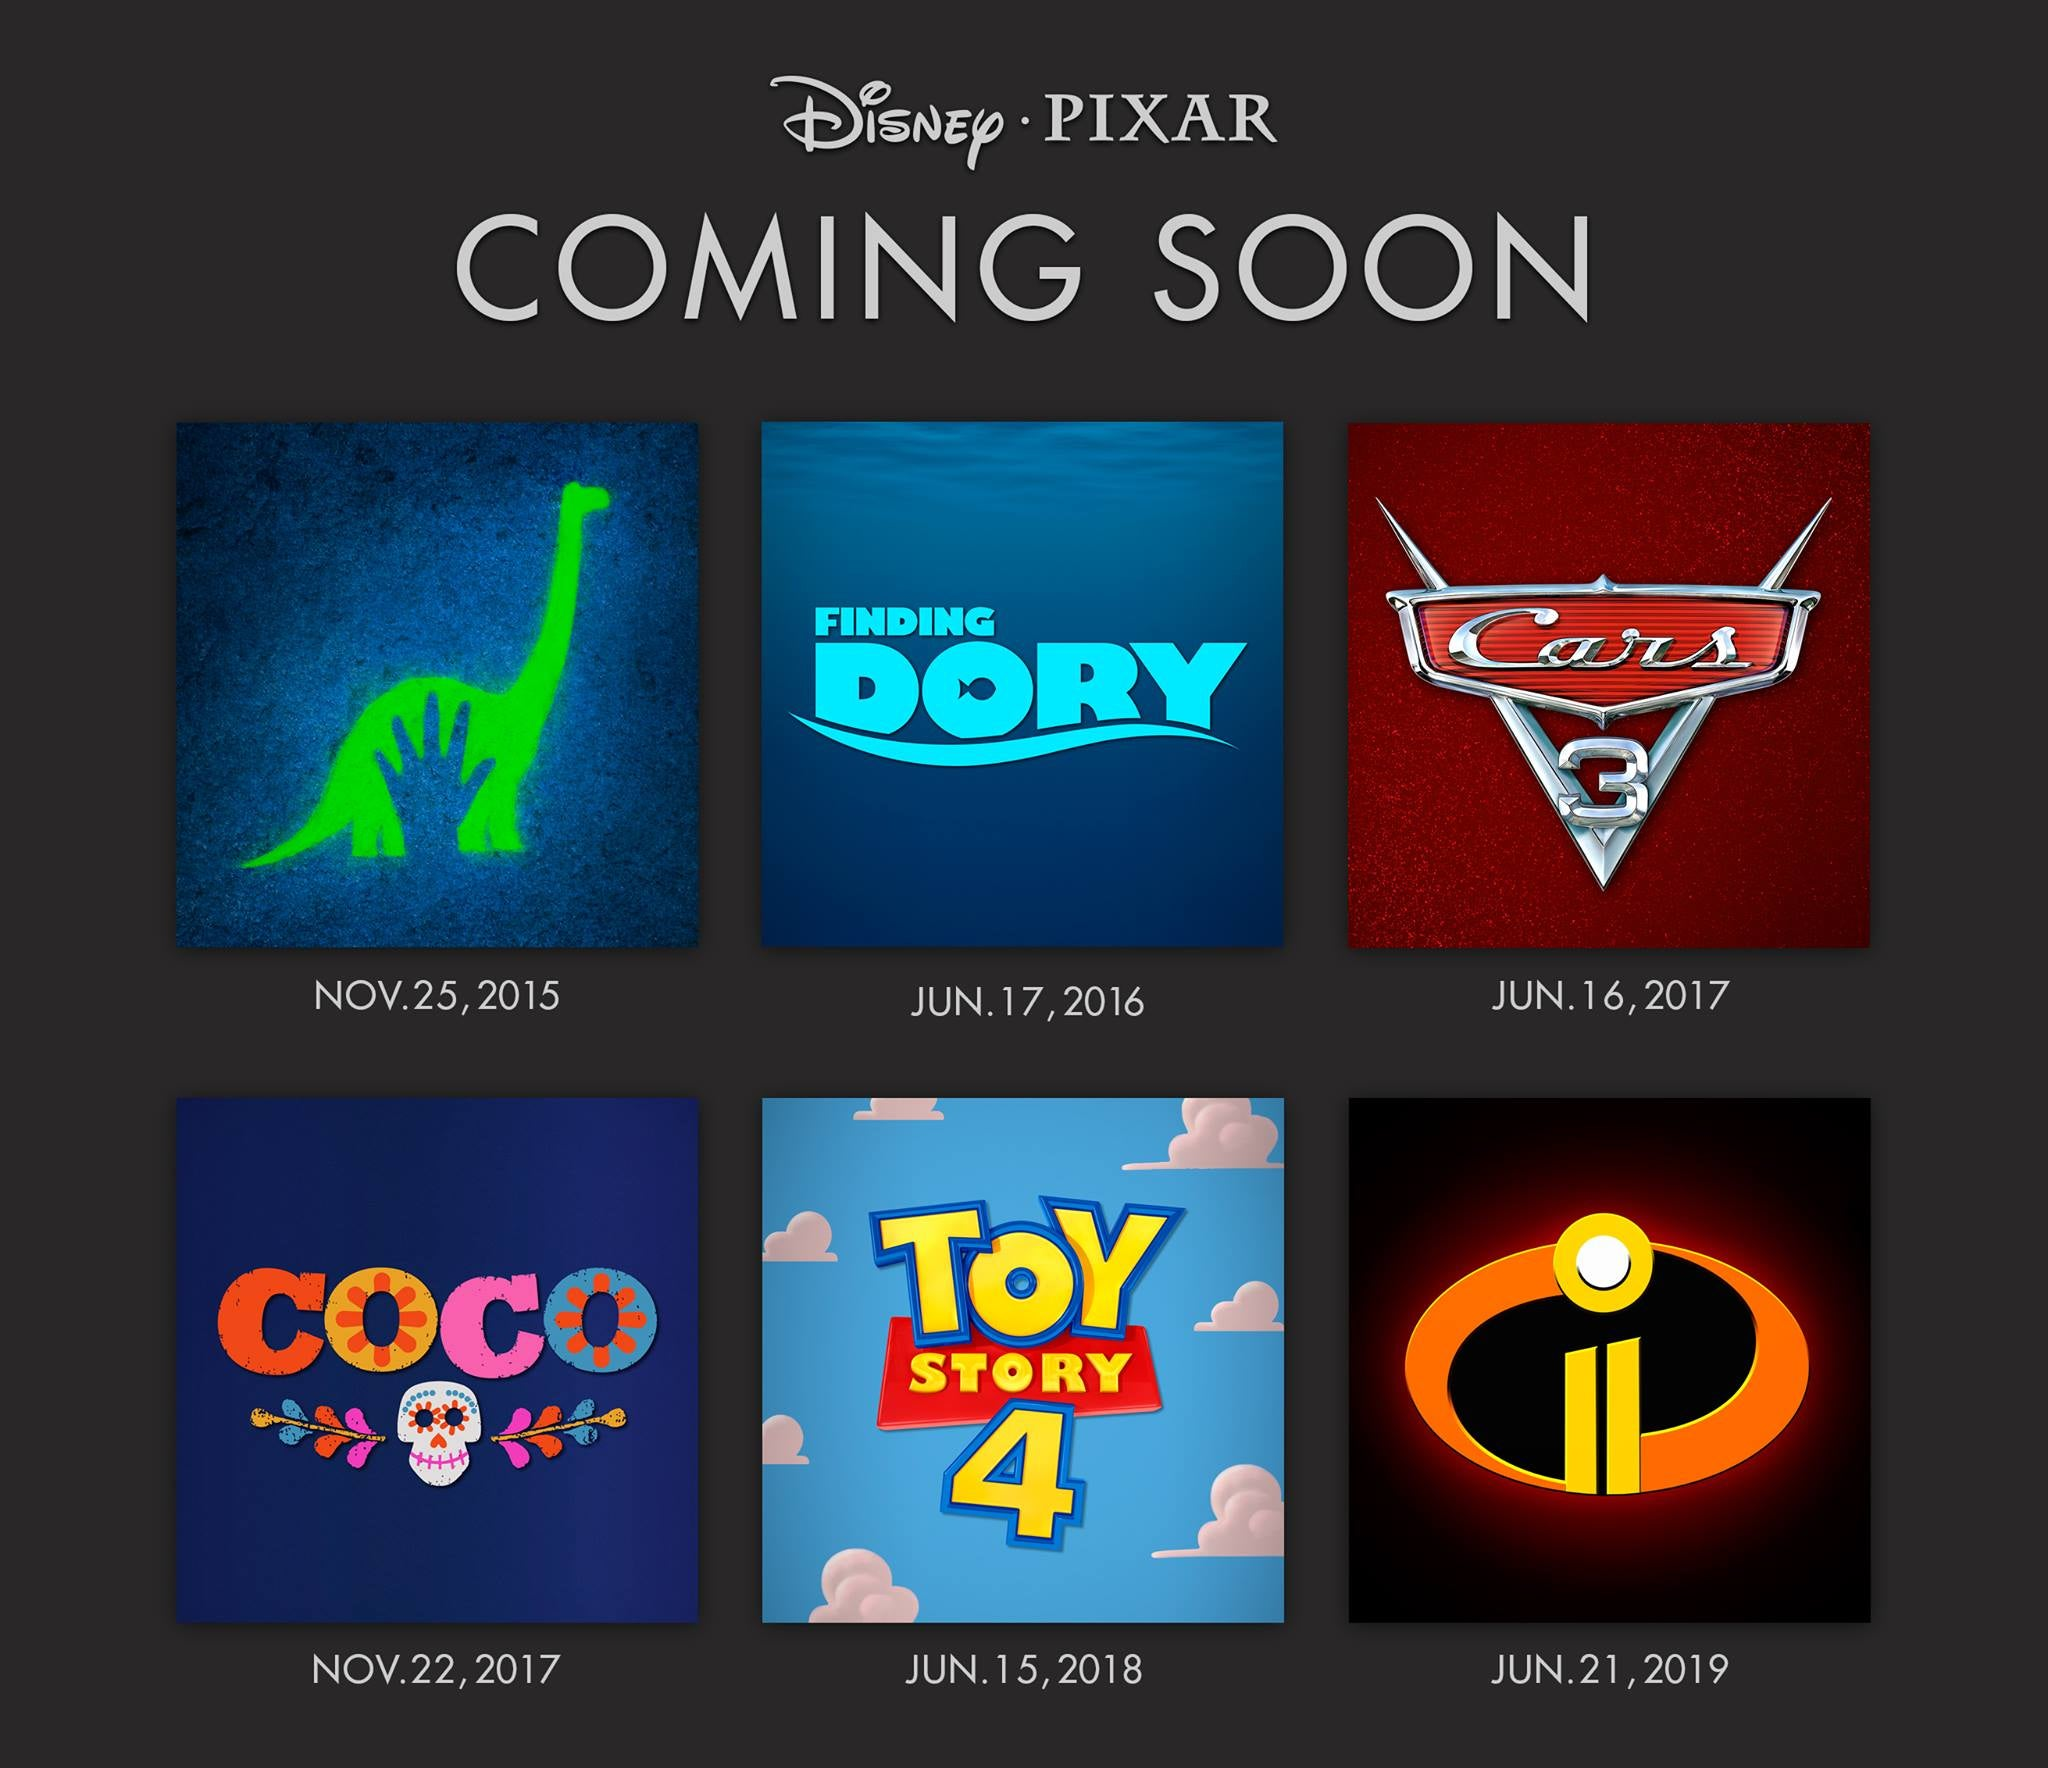 Veggietales Larry Bob furthermore How Story Moana And Maui Holds Against Cultural Truths 180961258 furthermore Dragon Tales Emmy Max Enrique piFj8RmN7FHGuDb93coN8AKmlNUxLyYWh ZzMTBPBFk also Awesome Sea Animals as well Early 2000s Toys. on growing shark toys